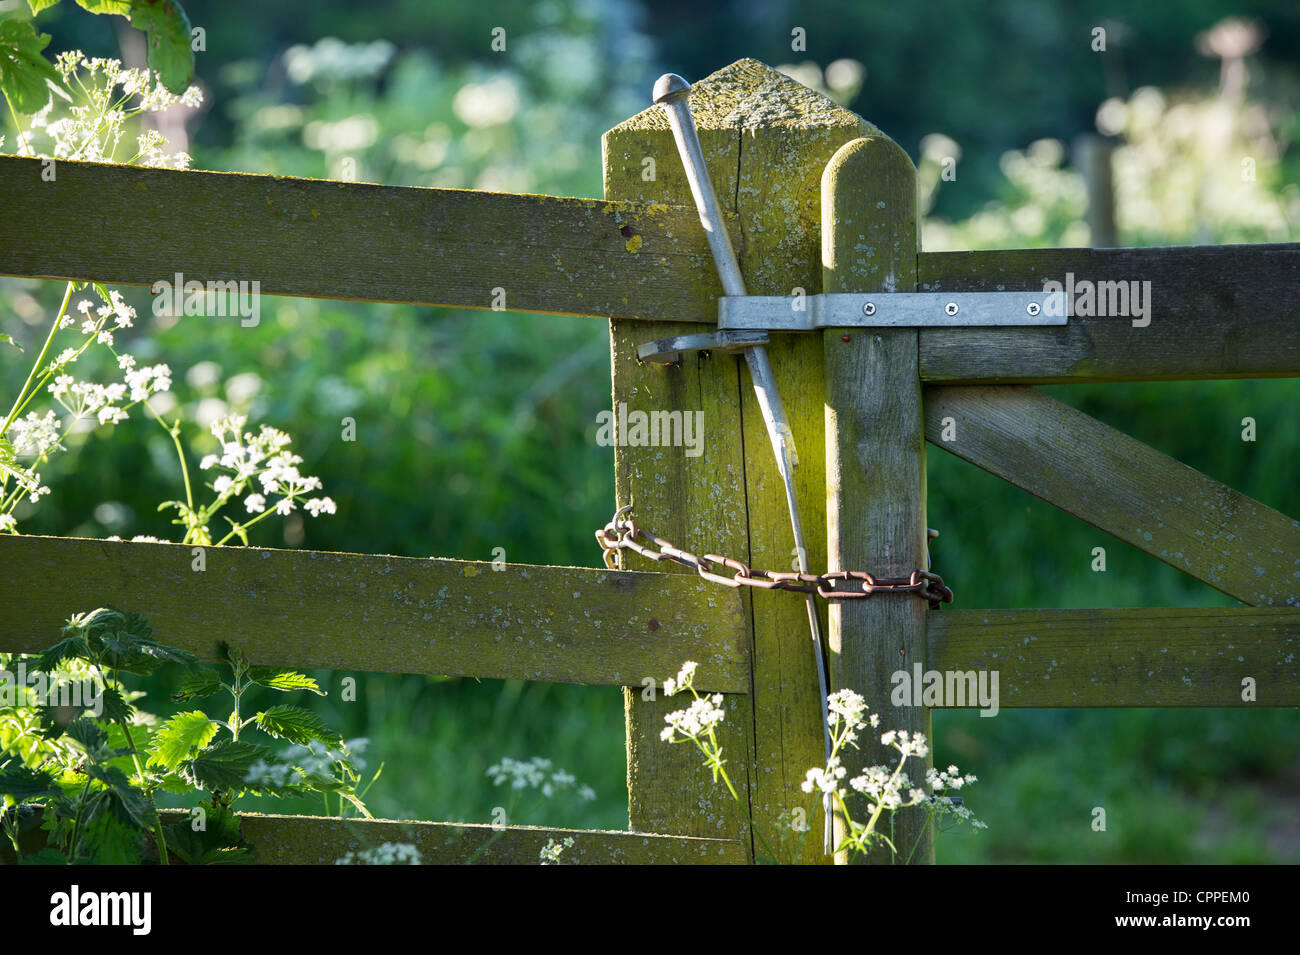 Evening light on a wooden farm gate - Stock Image